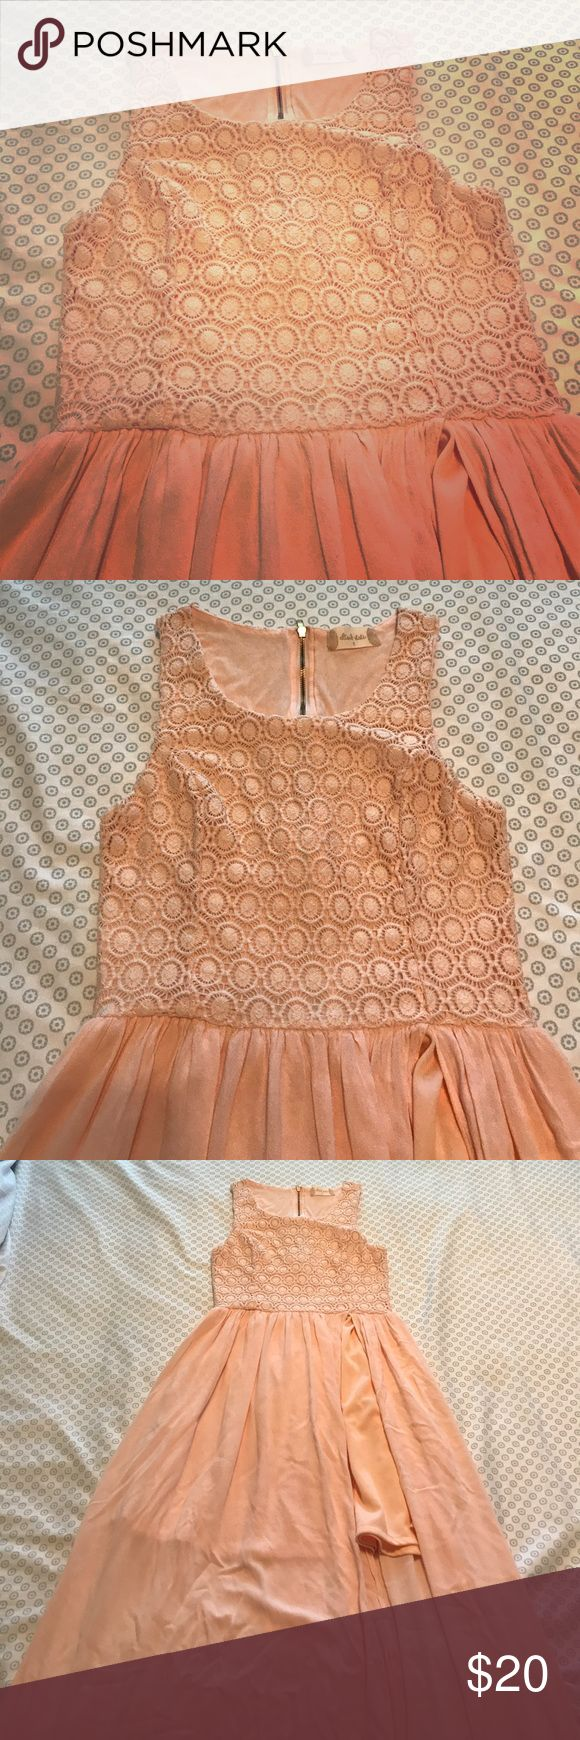 Peach Maxi Dress Be beautiful in this cute dress. Side slit. Zipper in the back. Soft flows material. Pair these with a cute pair of Sandler and enjoy a hot summer day in style. Only worn a couple of times. Altar'd State Dresses Maxi